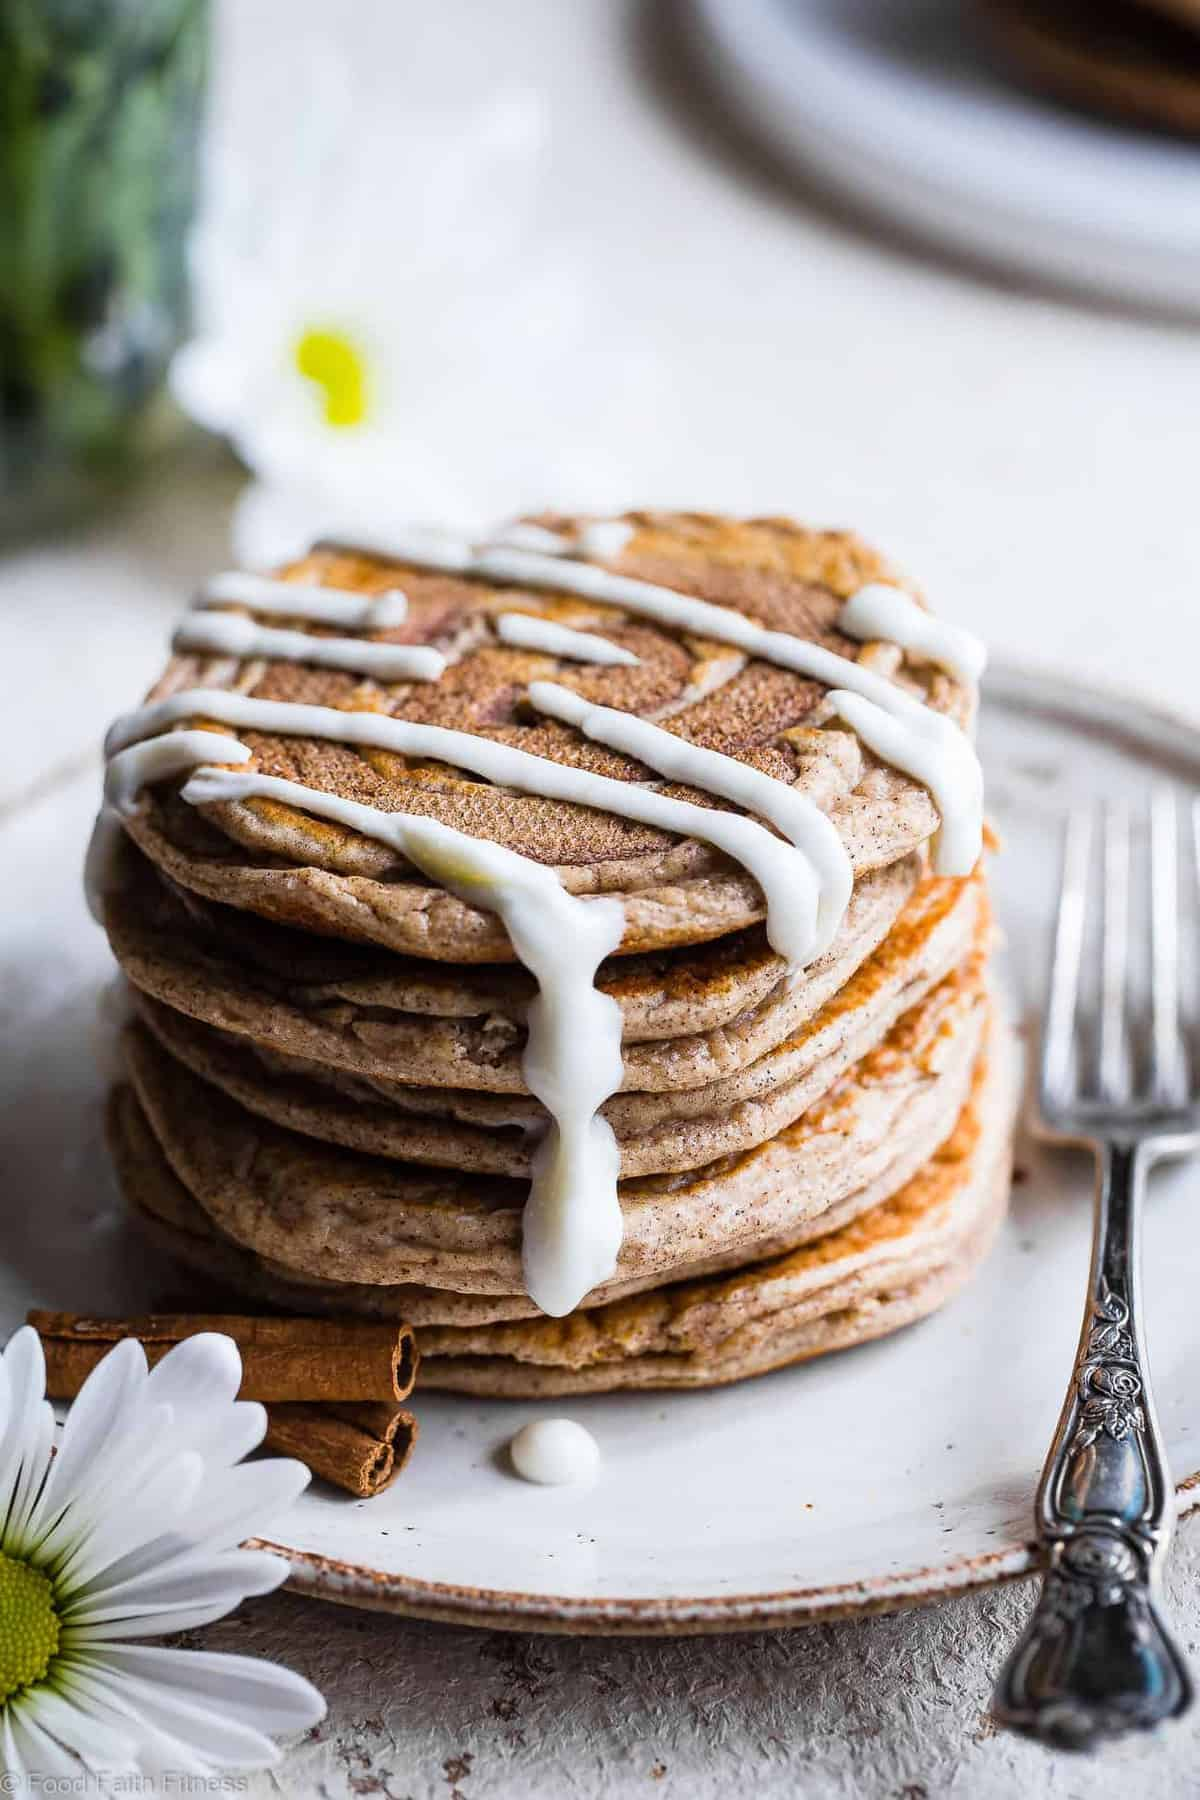 Easy Cinnamon Roll Gluten Free Low Carb Keto Protein Pancakes -This low carb pancake recipe is going to be your new favorite breakfast! Great for kids and adults and packed with 23g of protein!Who doesn't want to wake up to healthy cinnamon rolls?! | #Foodfaithfitness | #Keto #Lowcarb #Glutenfree #Healthy #Pancakes